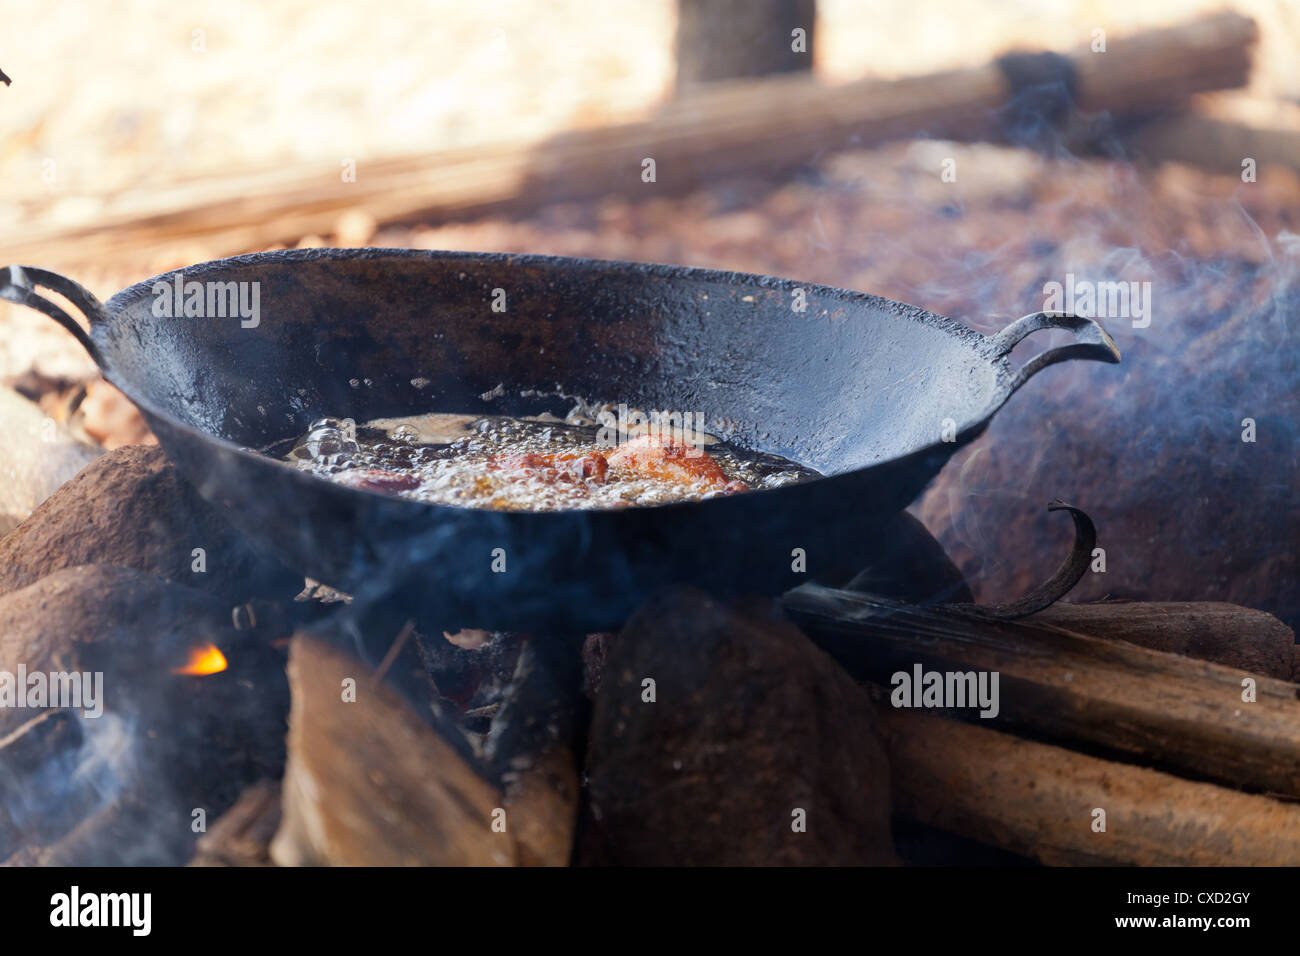 Wok on the Diamond Fields of Cempaka in South Kalimantan in Indonesia - Stock Image